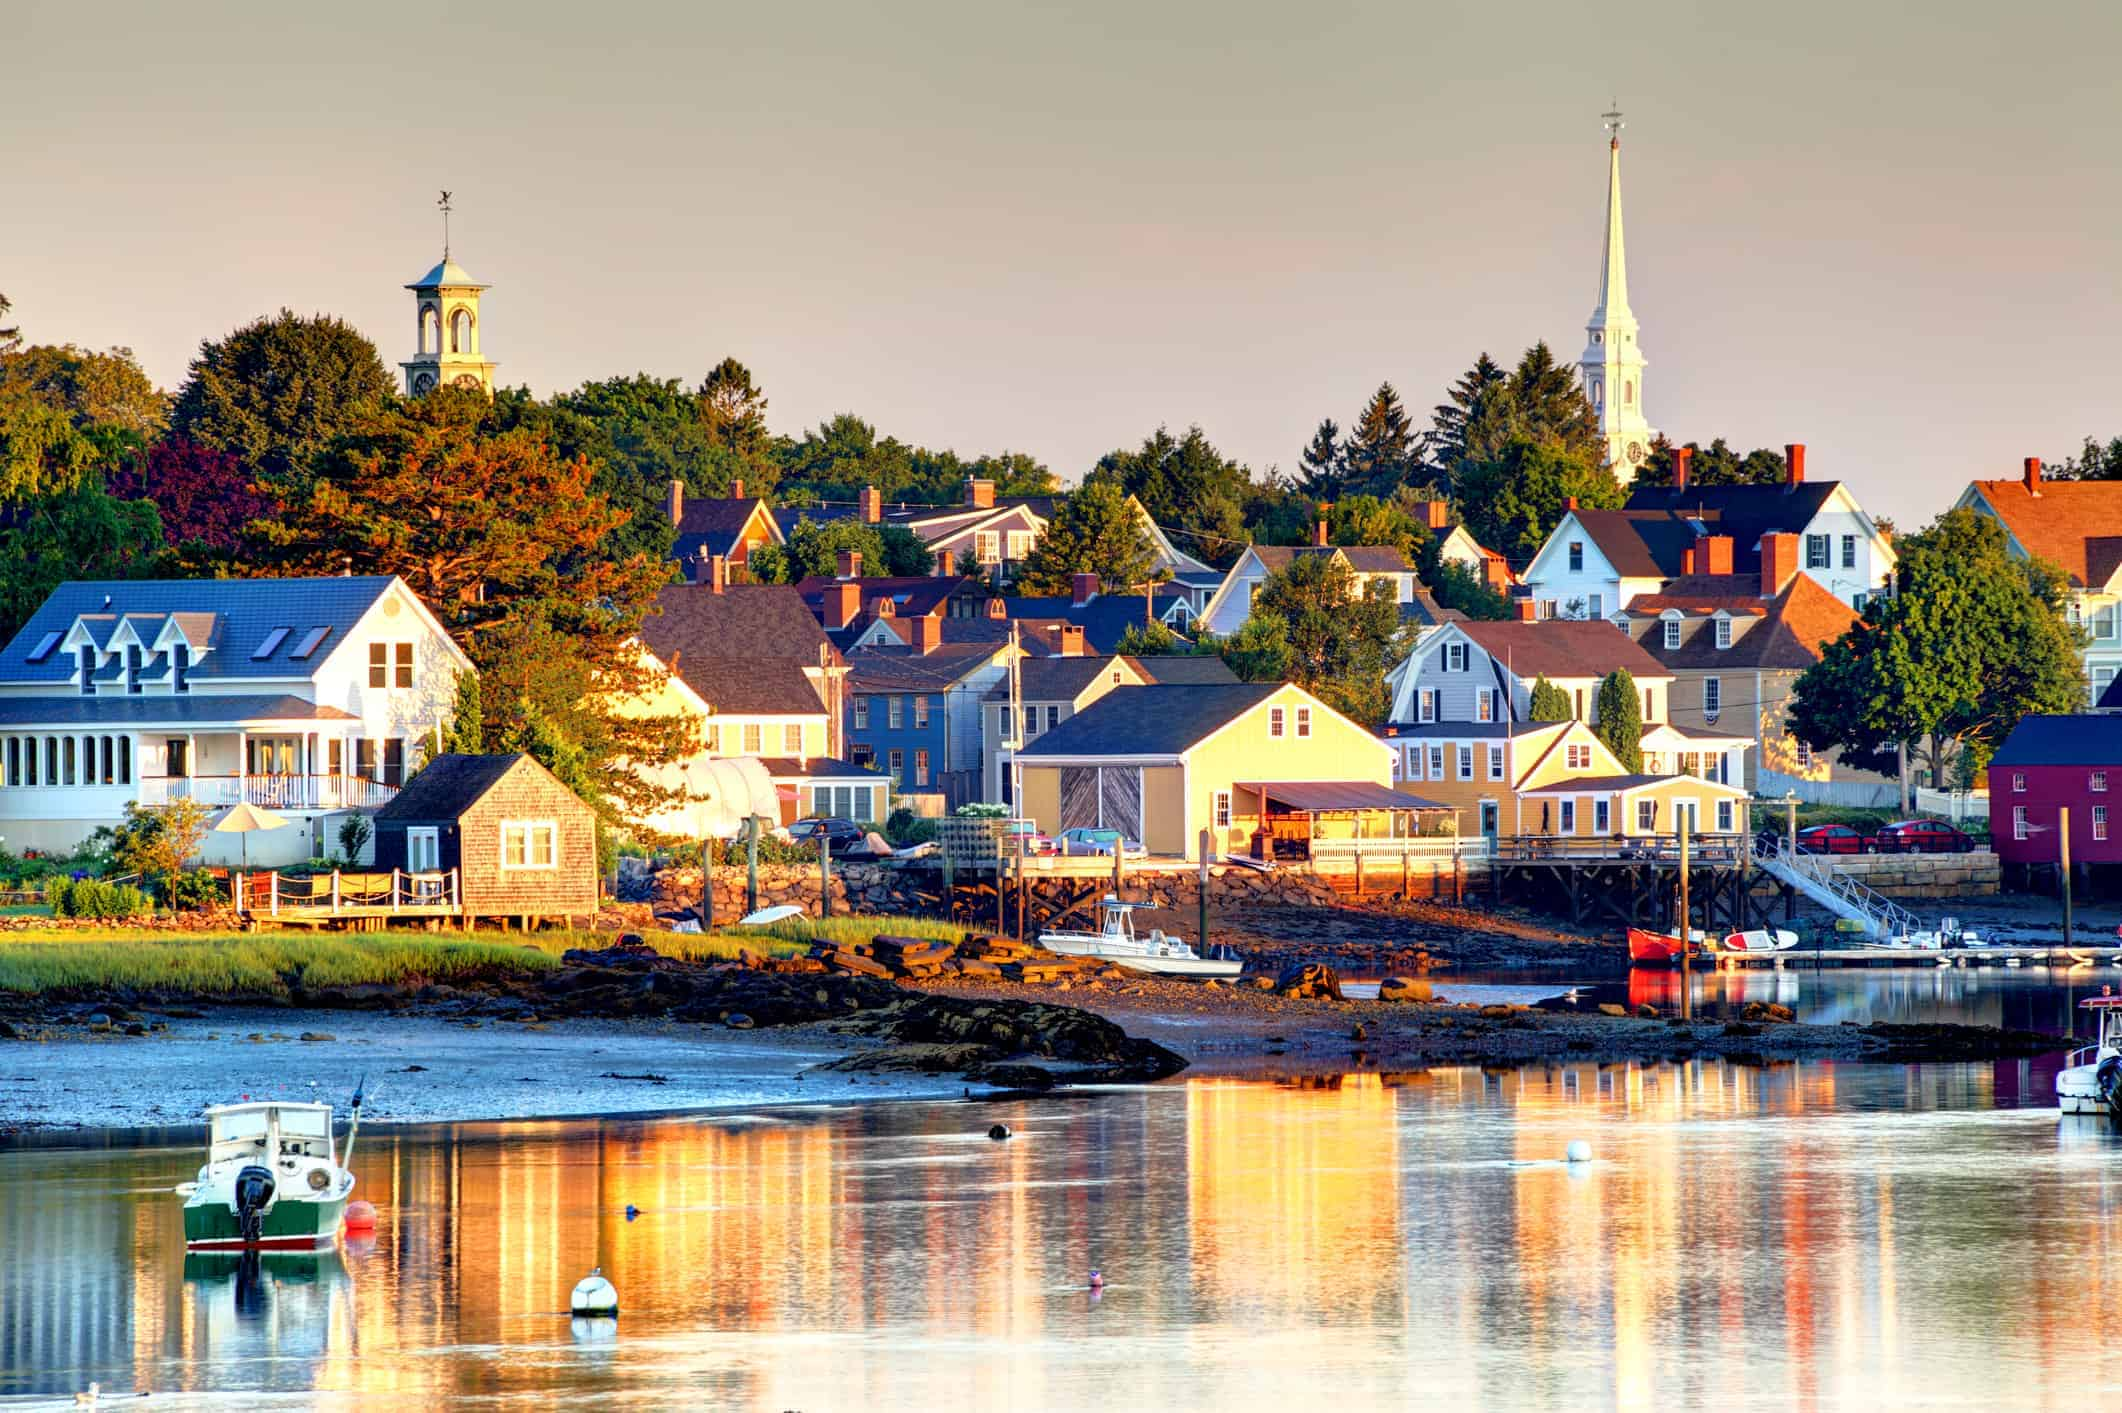 Portsmouth is a city in Rockingham County, New Hampshire.